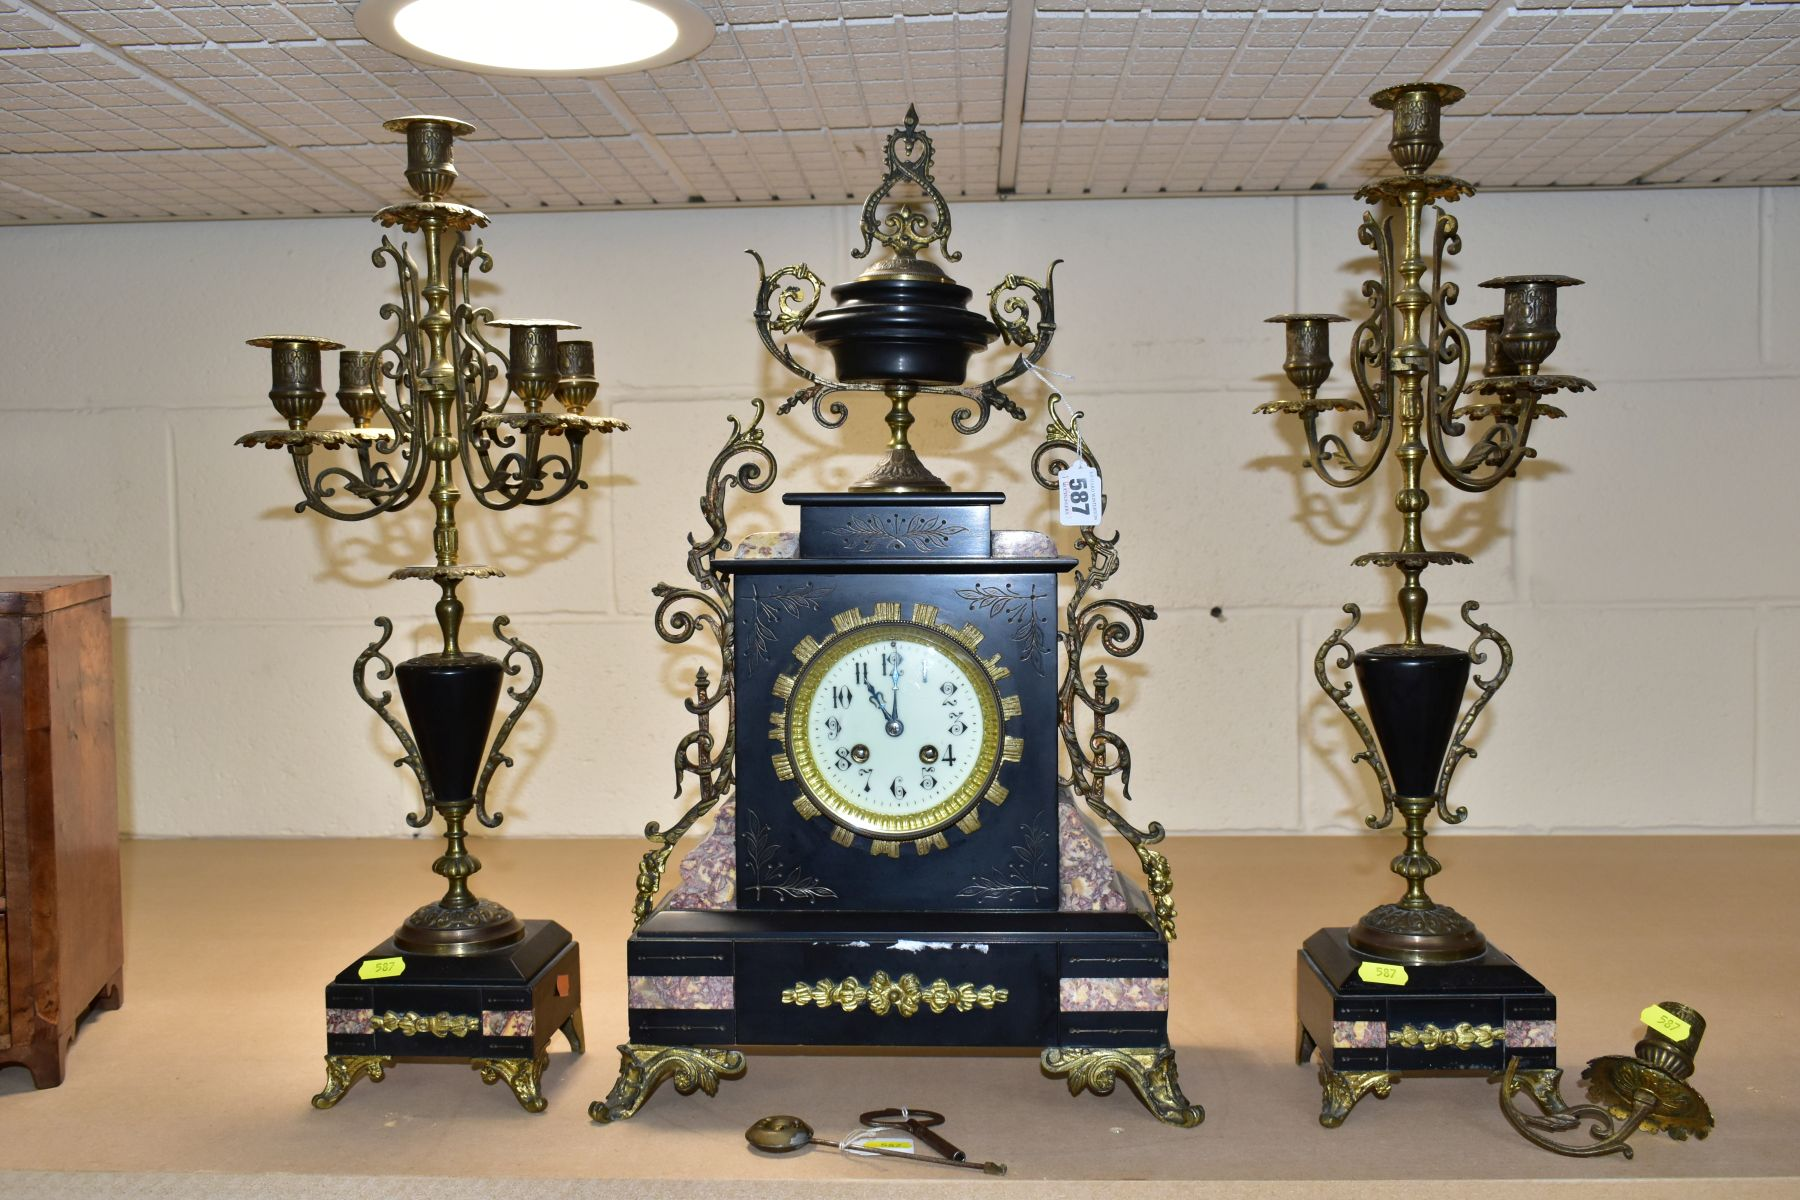 A LATE 19TH CENTURY BLACK SLATE, MARBLE AND GILT METAL CLOCK GARNITURE, the clock with urn shaped